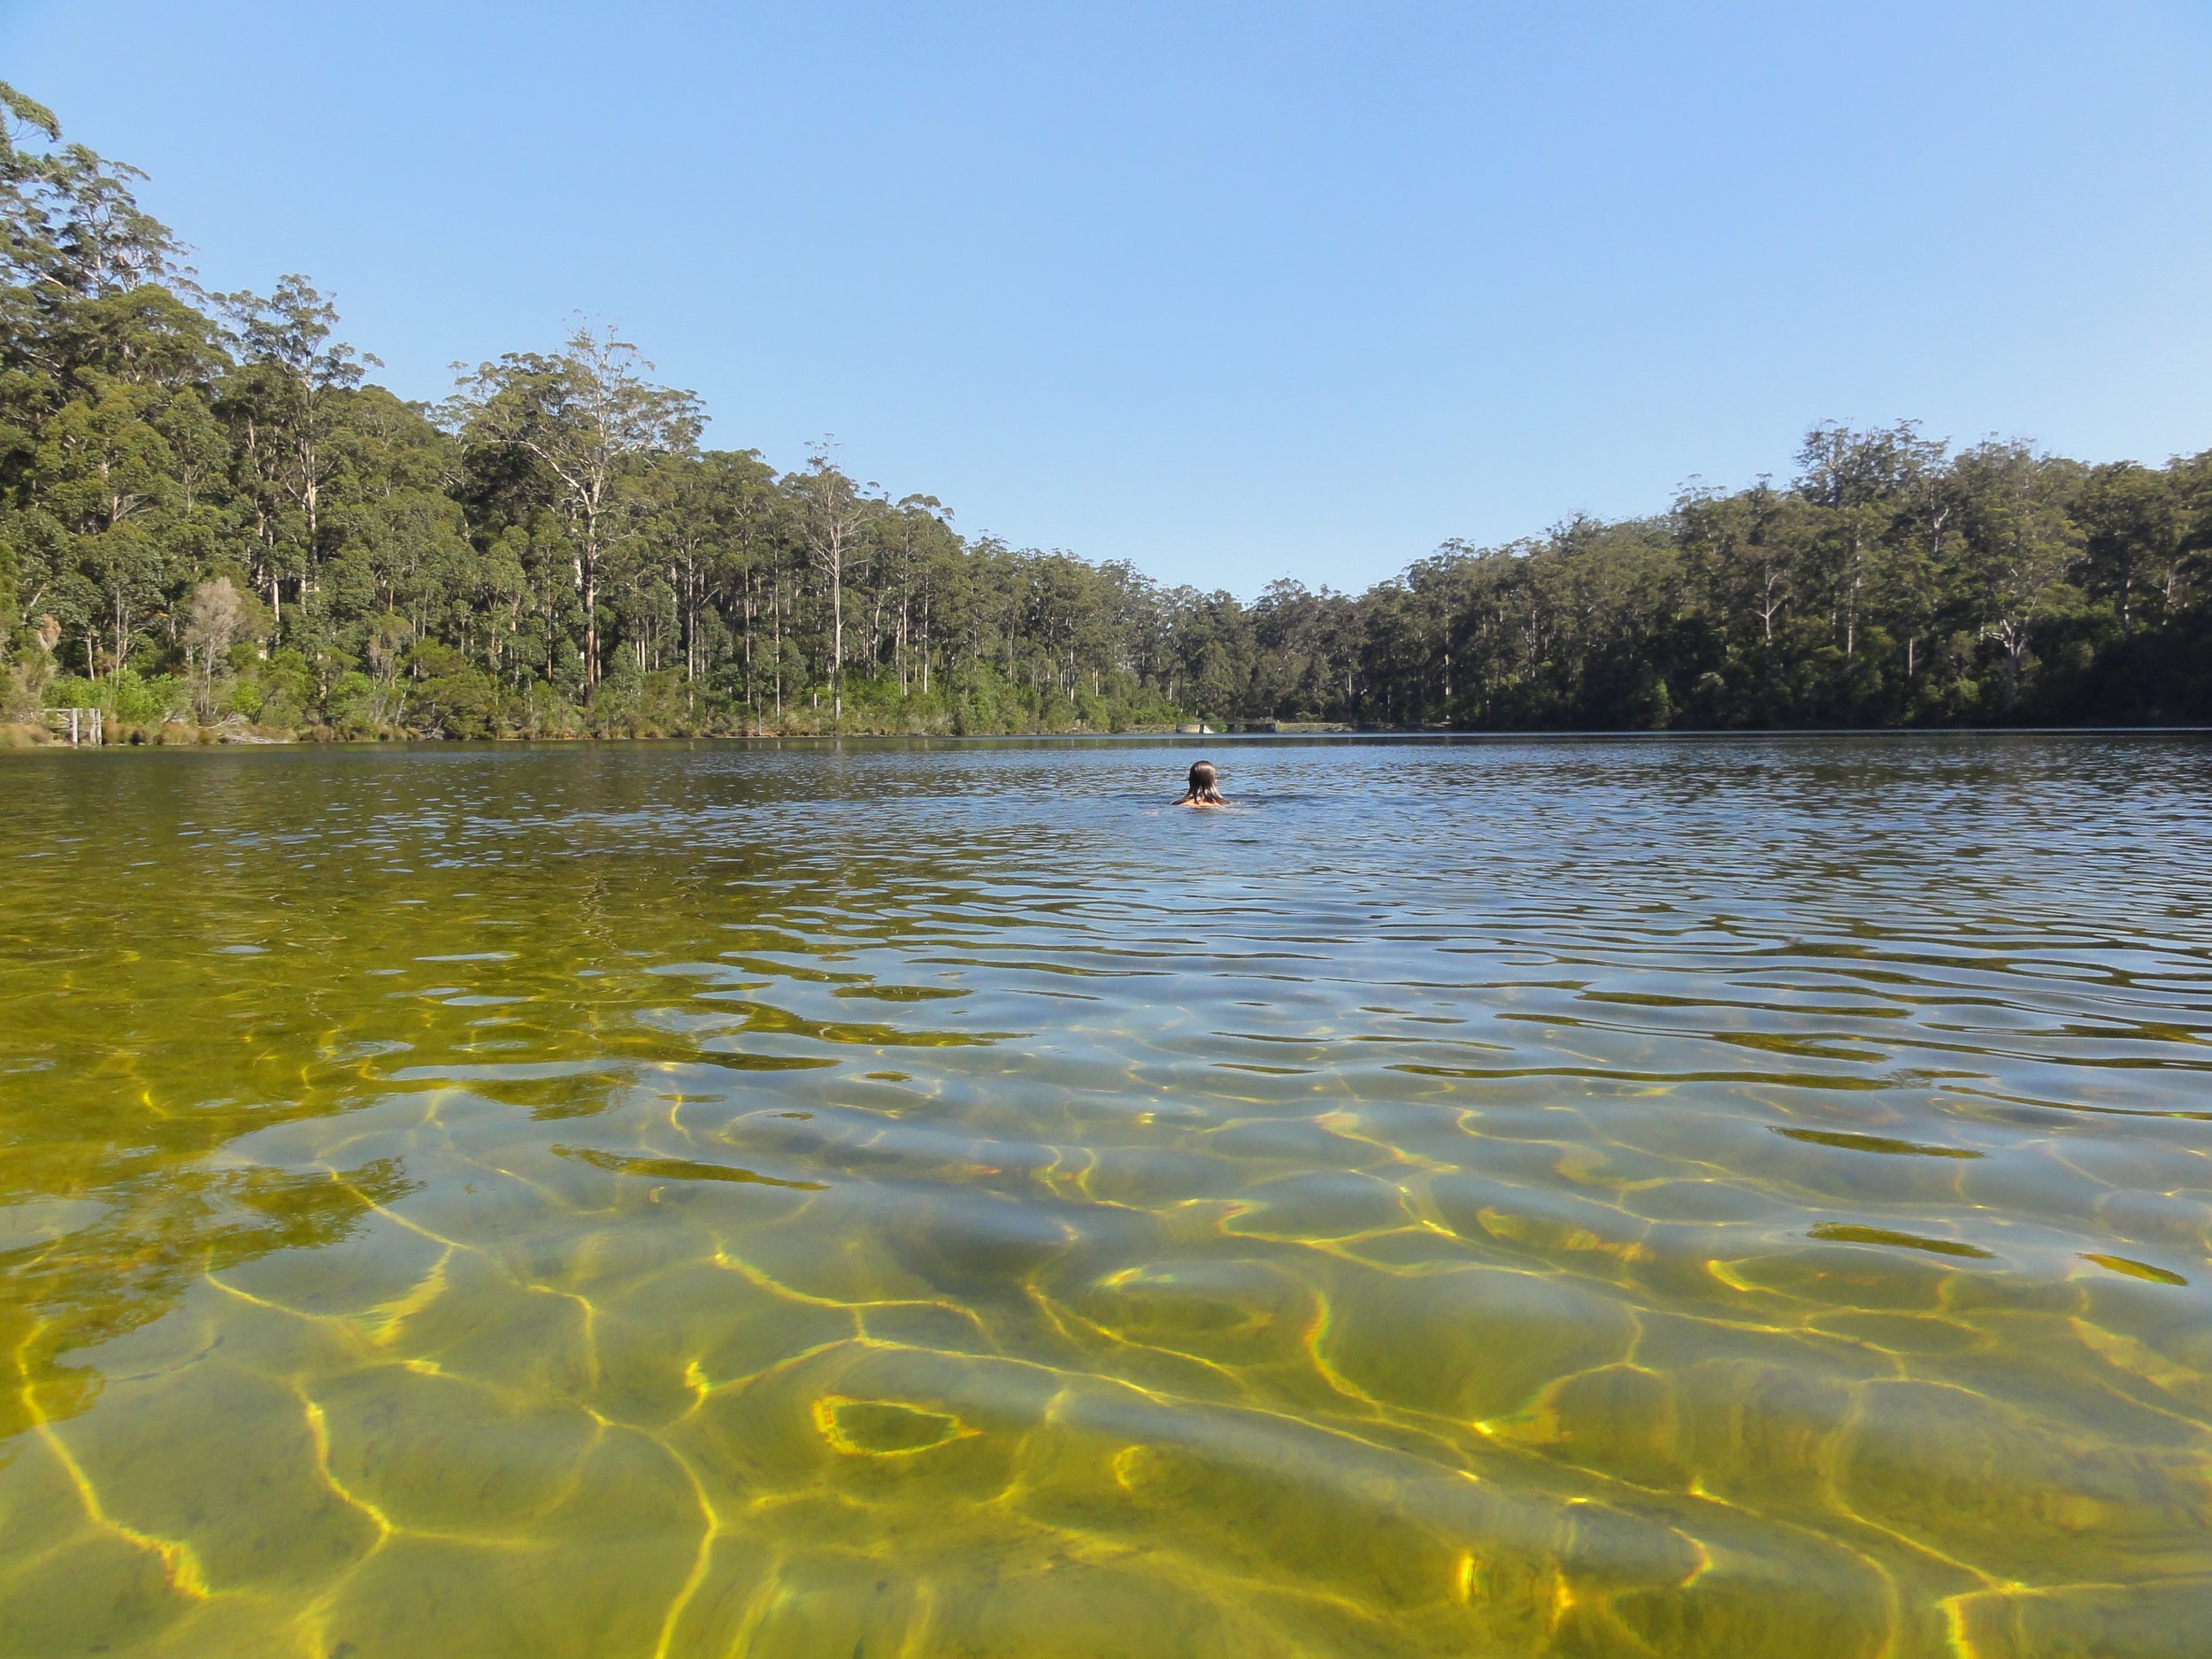 This is Big Brook Dam in Western Australian near Pemberton in the south. The water was clear with a sandy base. It was a beautiful place for a swim.